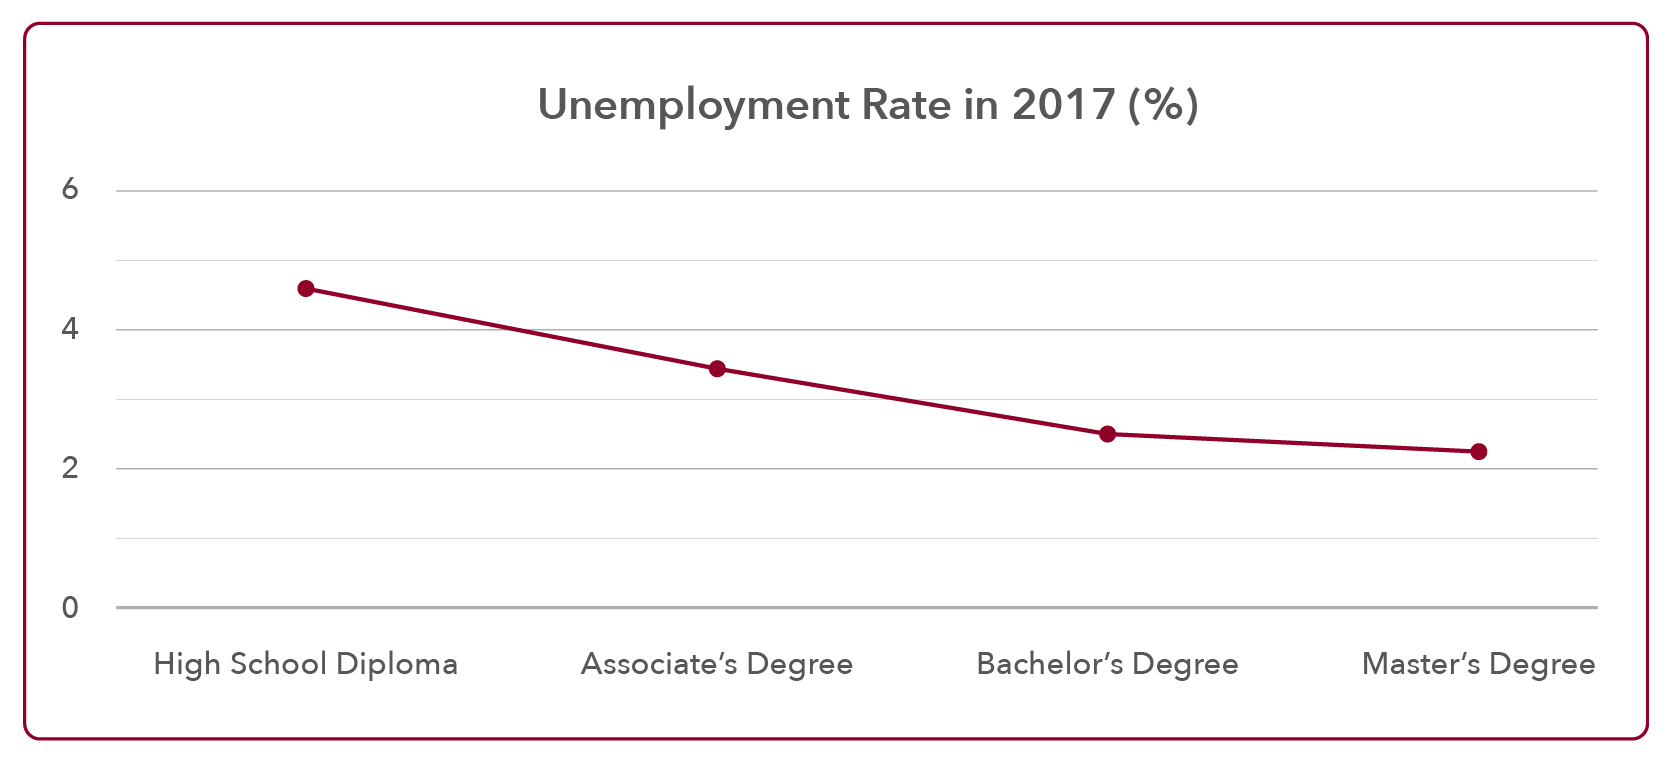 Unemployment Rate and Education in 2017